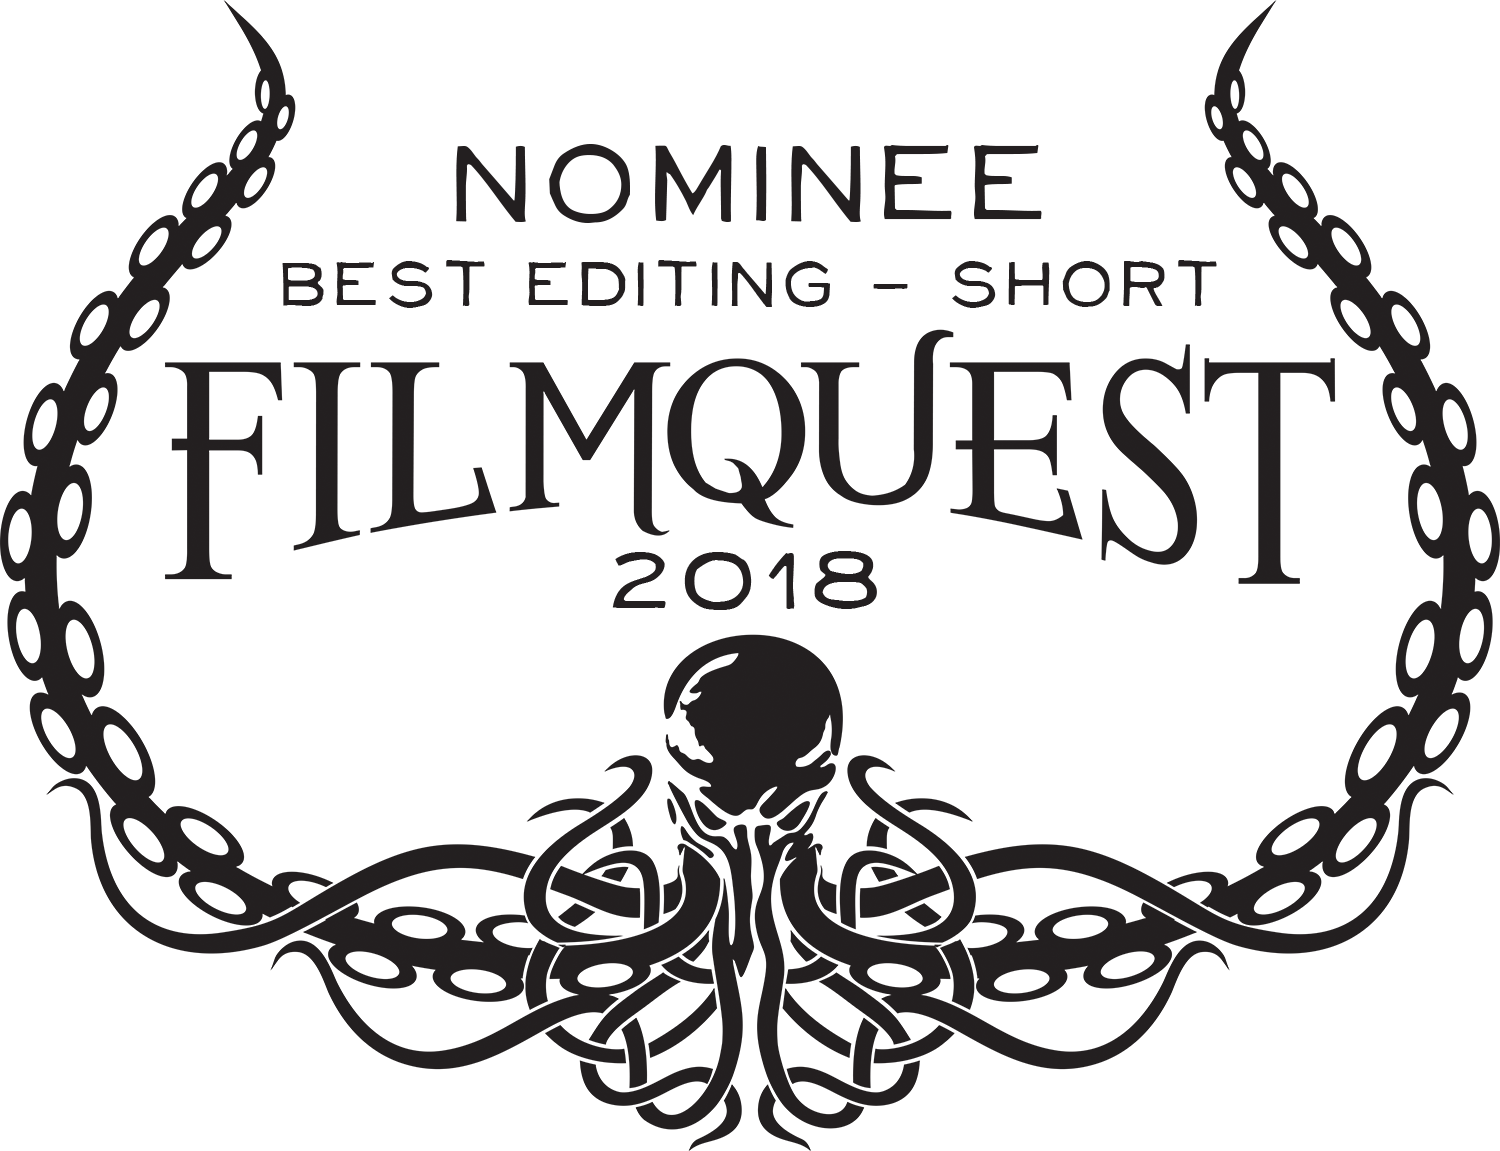 FilmQuest_Nominee_Editing.png